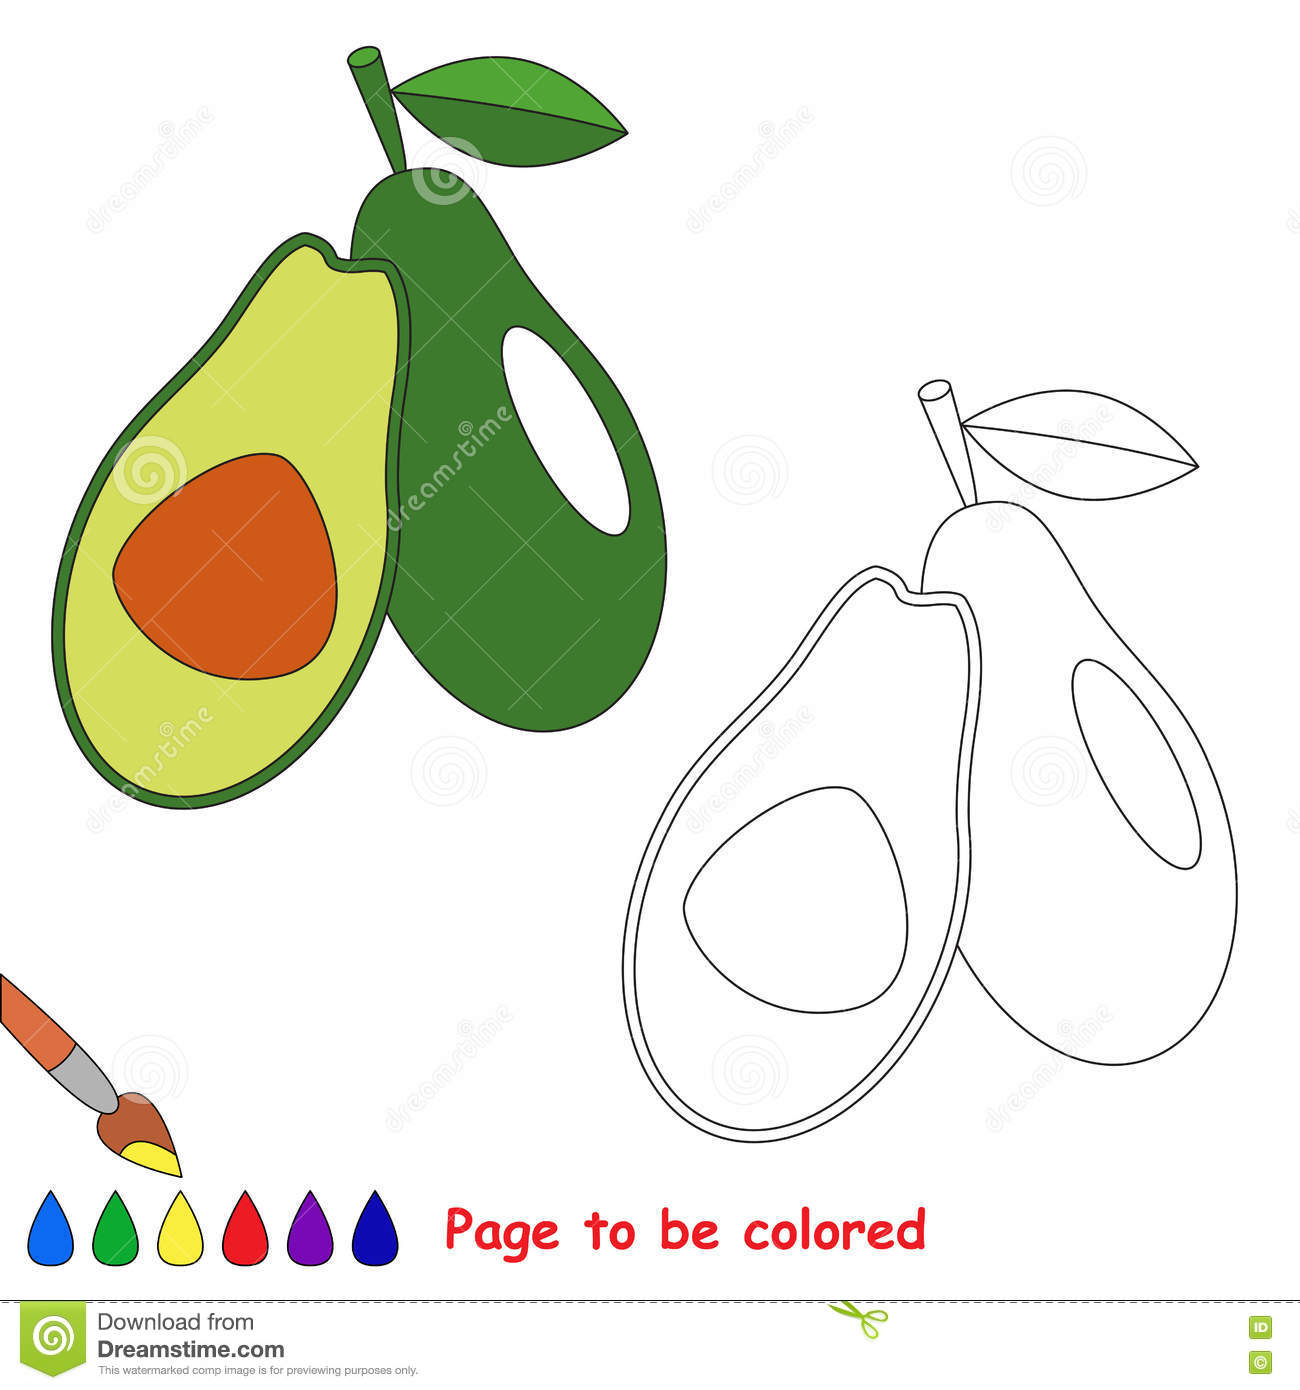 Green Avocado Cartoon. Page To Be Colored. Stock Vector ...